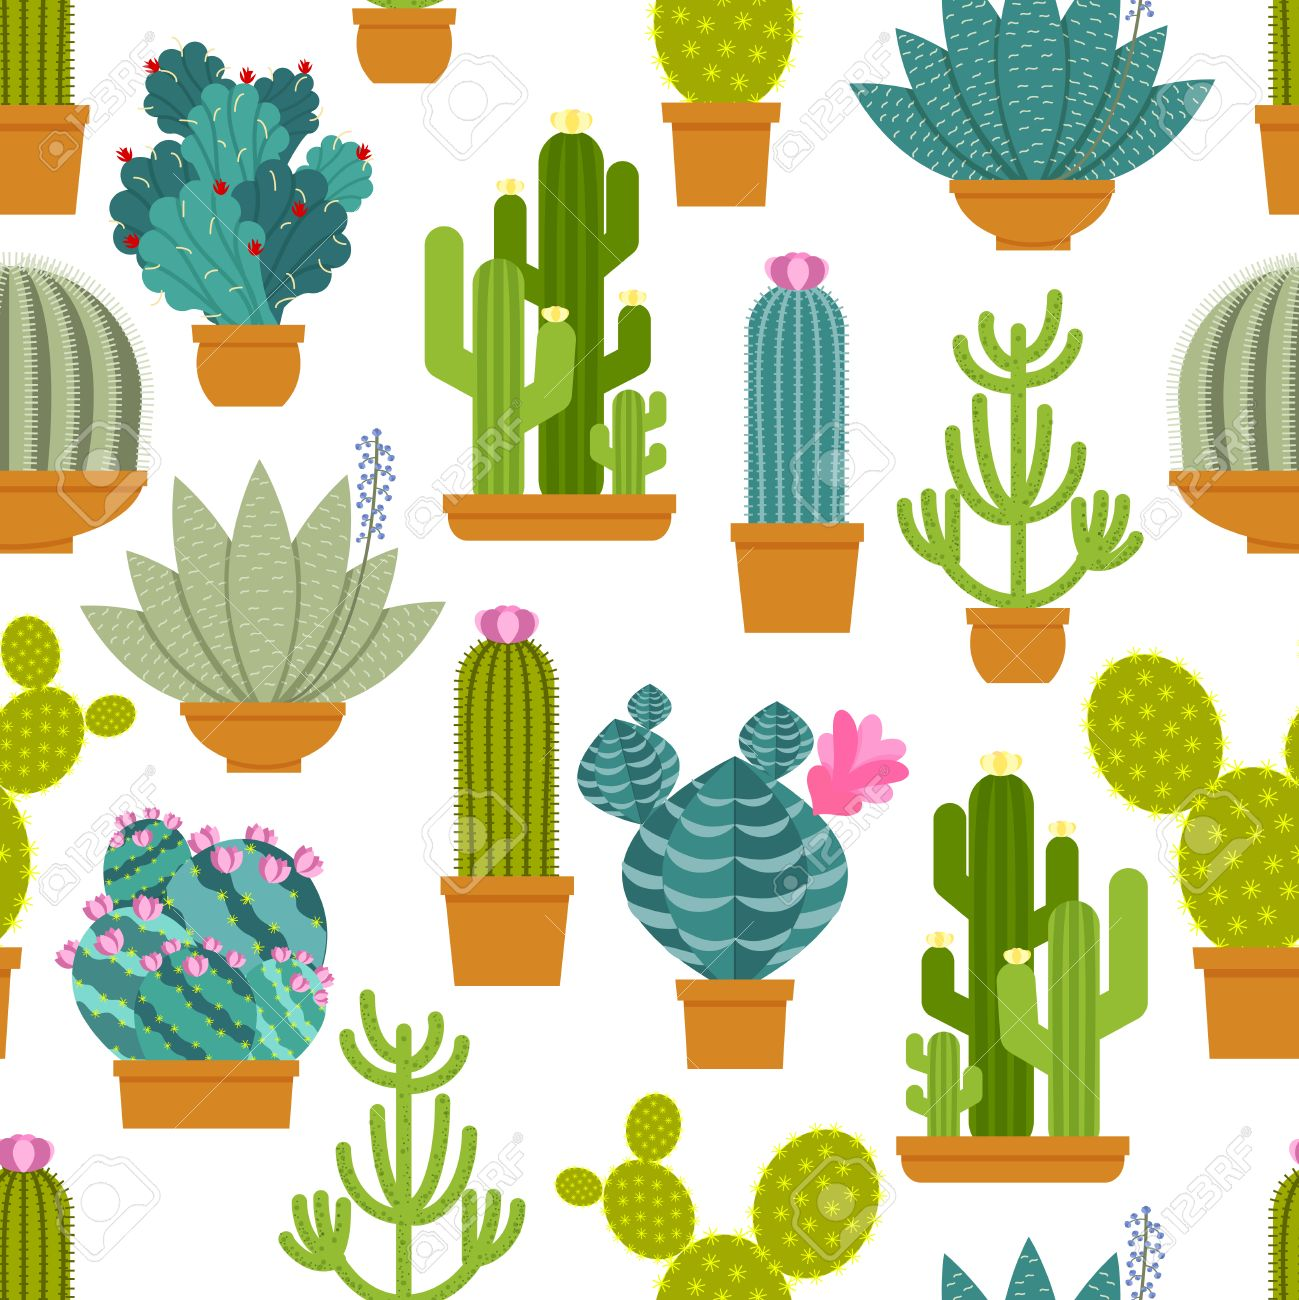 cactus seamless pattern. plant and nature, mexican wallpaper